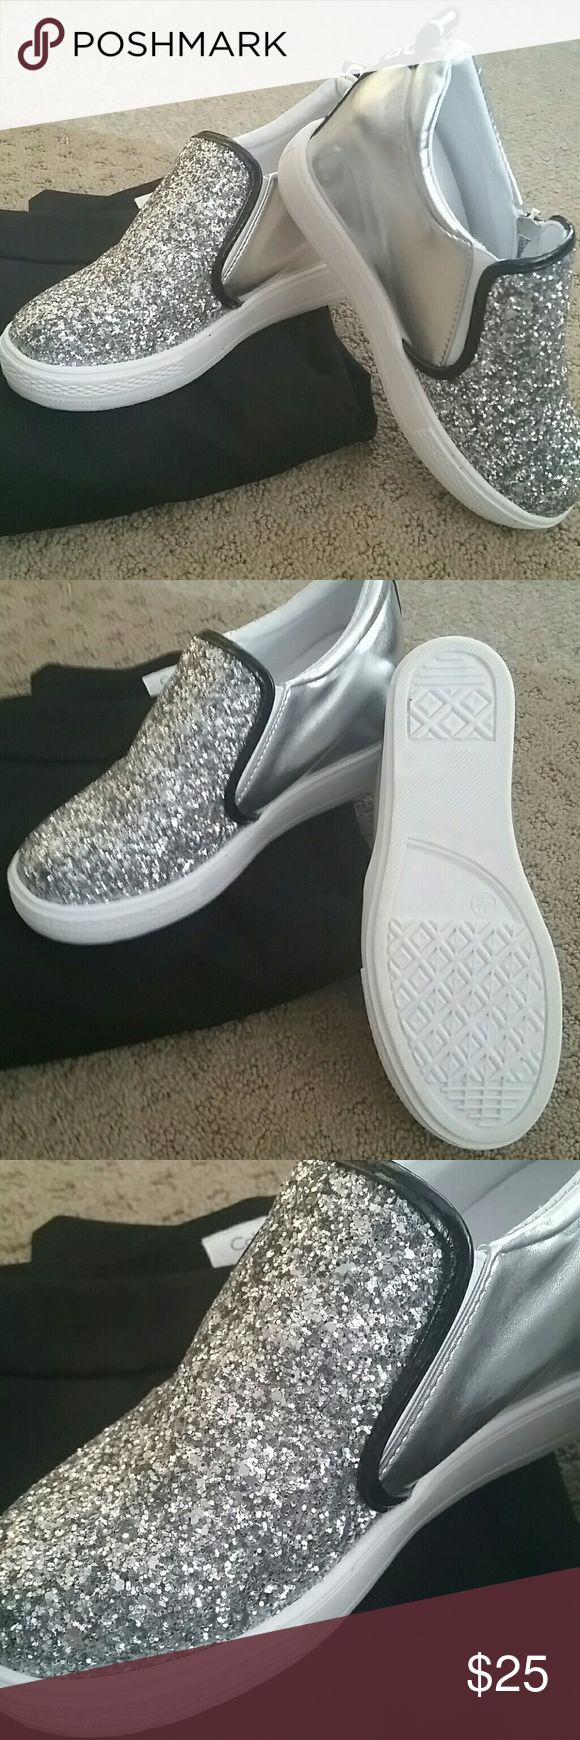 Sparkly Wedge Tennis Shoes New* Price Firm I bought these shoes ,because they were so cute! They are a wedge tennis shoe and I only tried them on. Too young for me!.. Sport Shoes Wedges